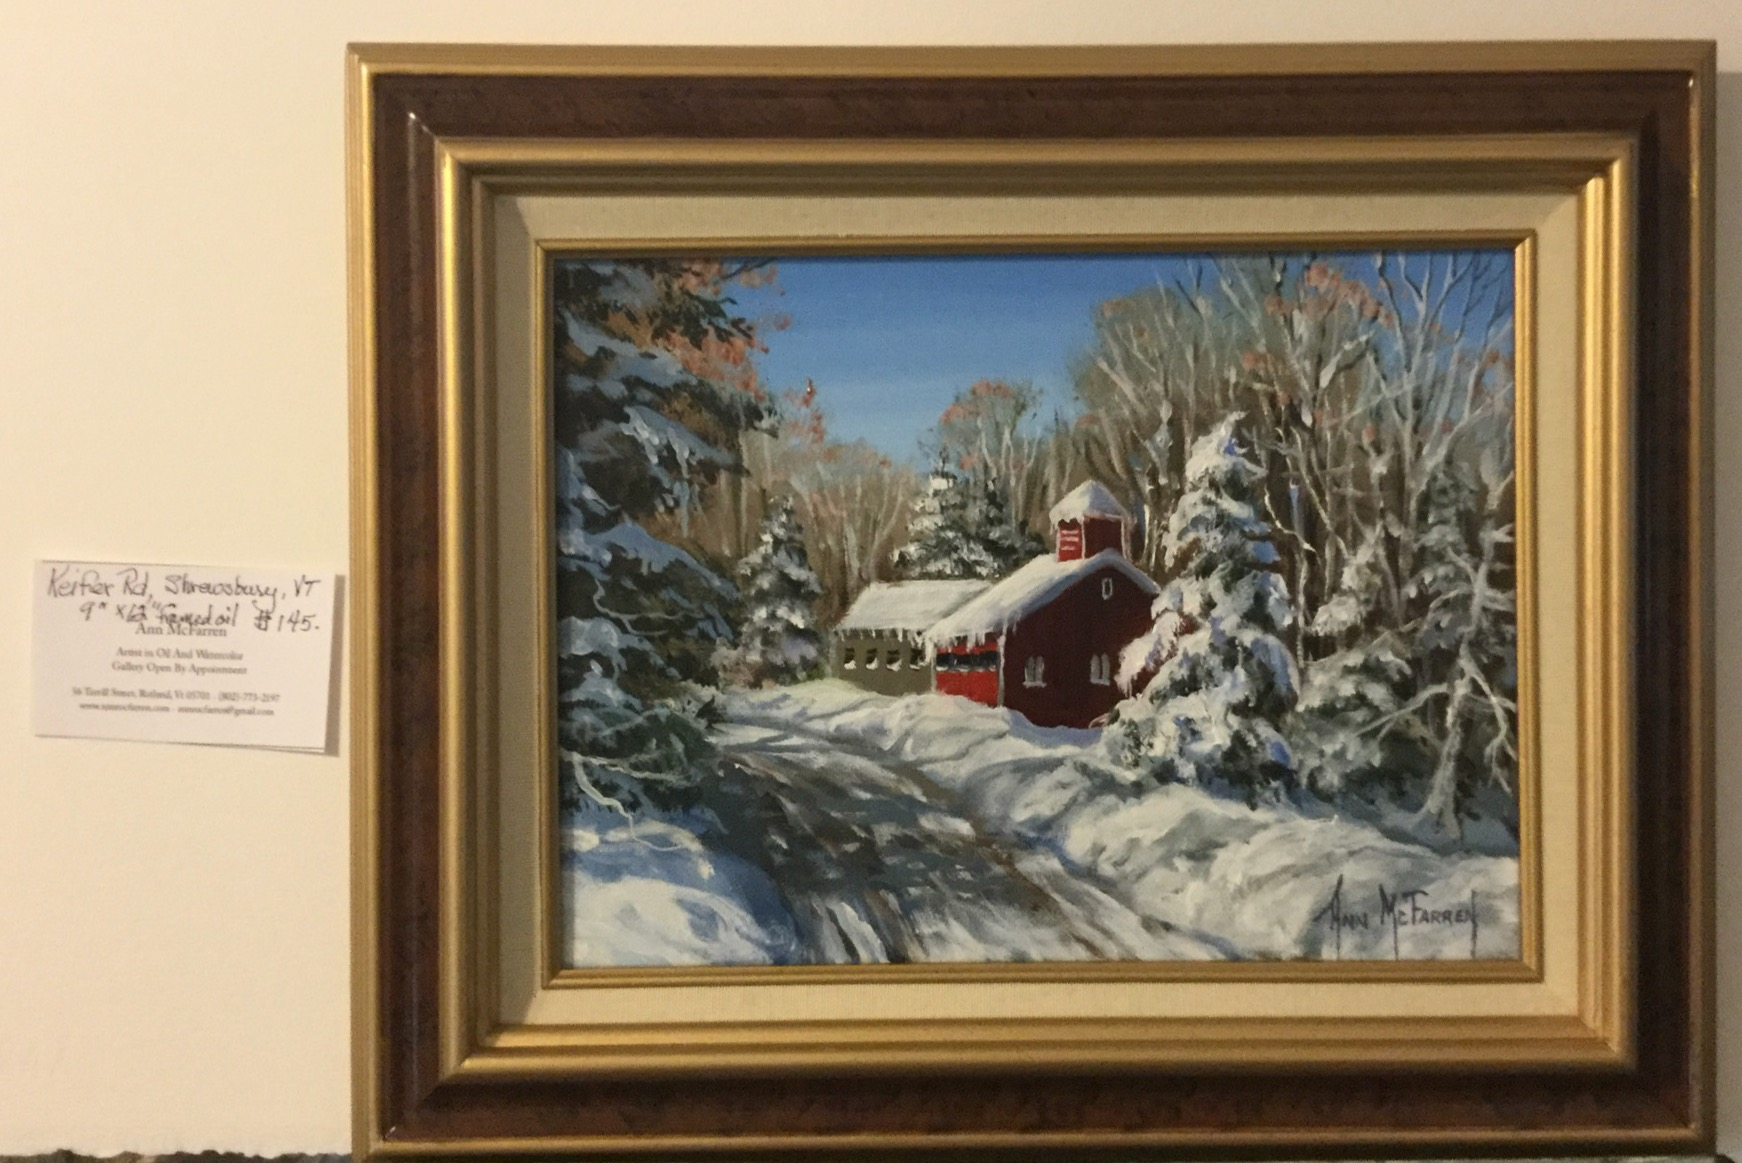 "$145 - Keifer Rd, Shrewsbury, VT - 9""x12"""